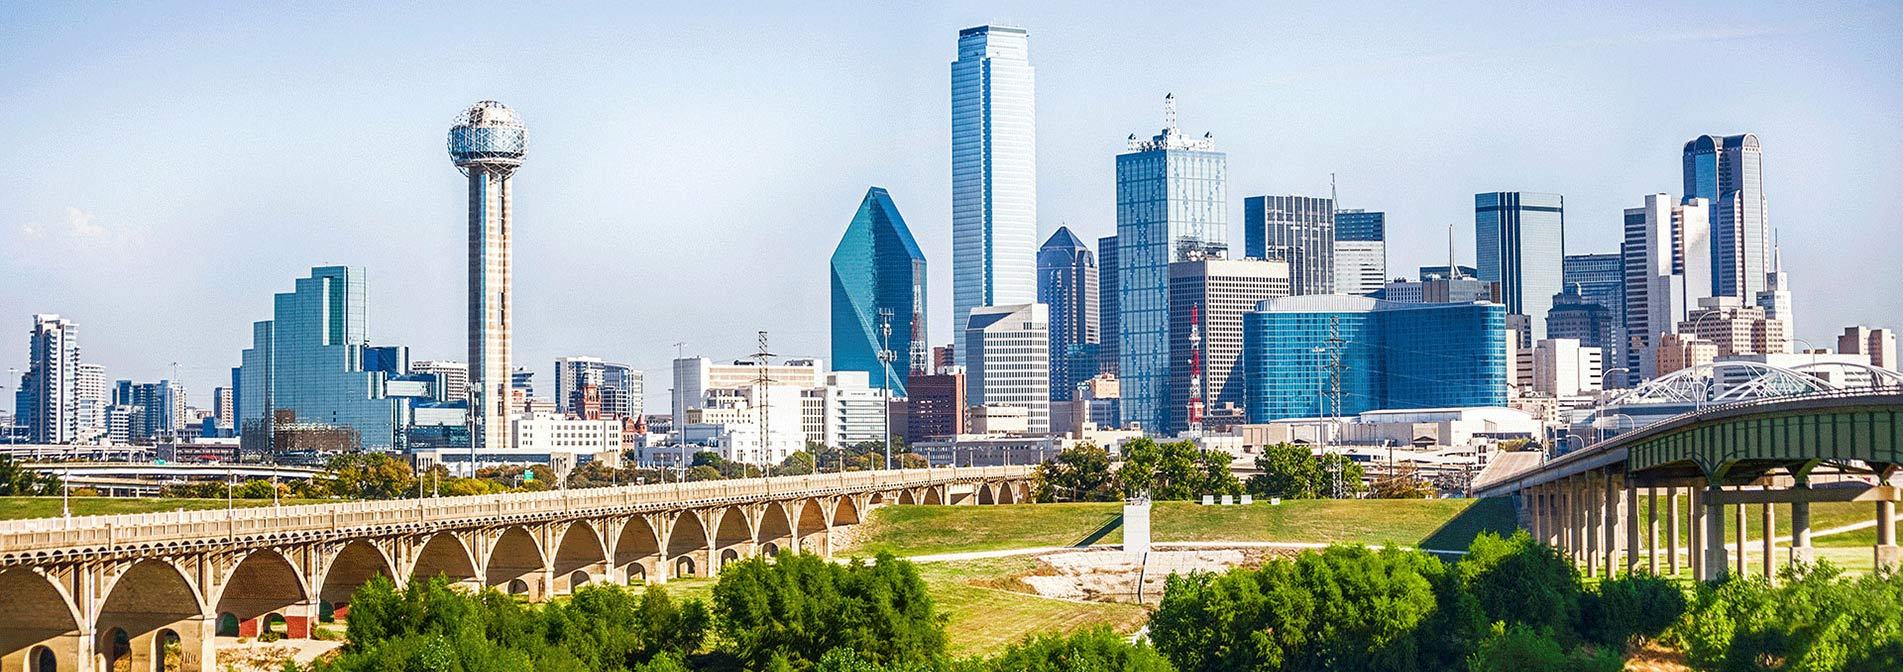 Dallas City Skyline Photo